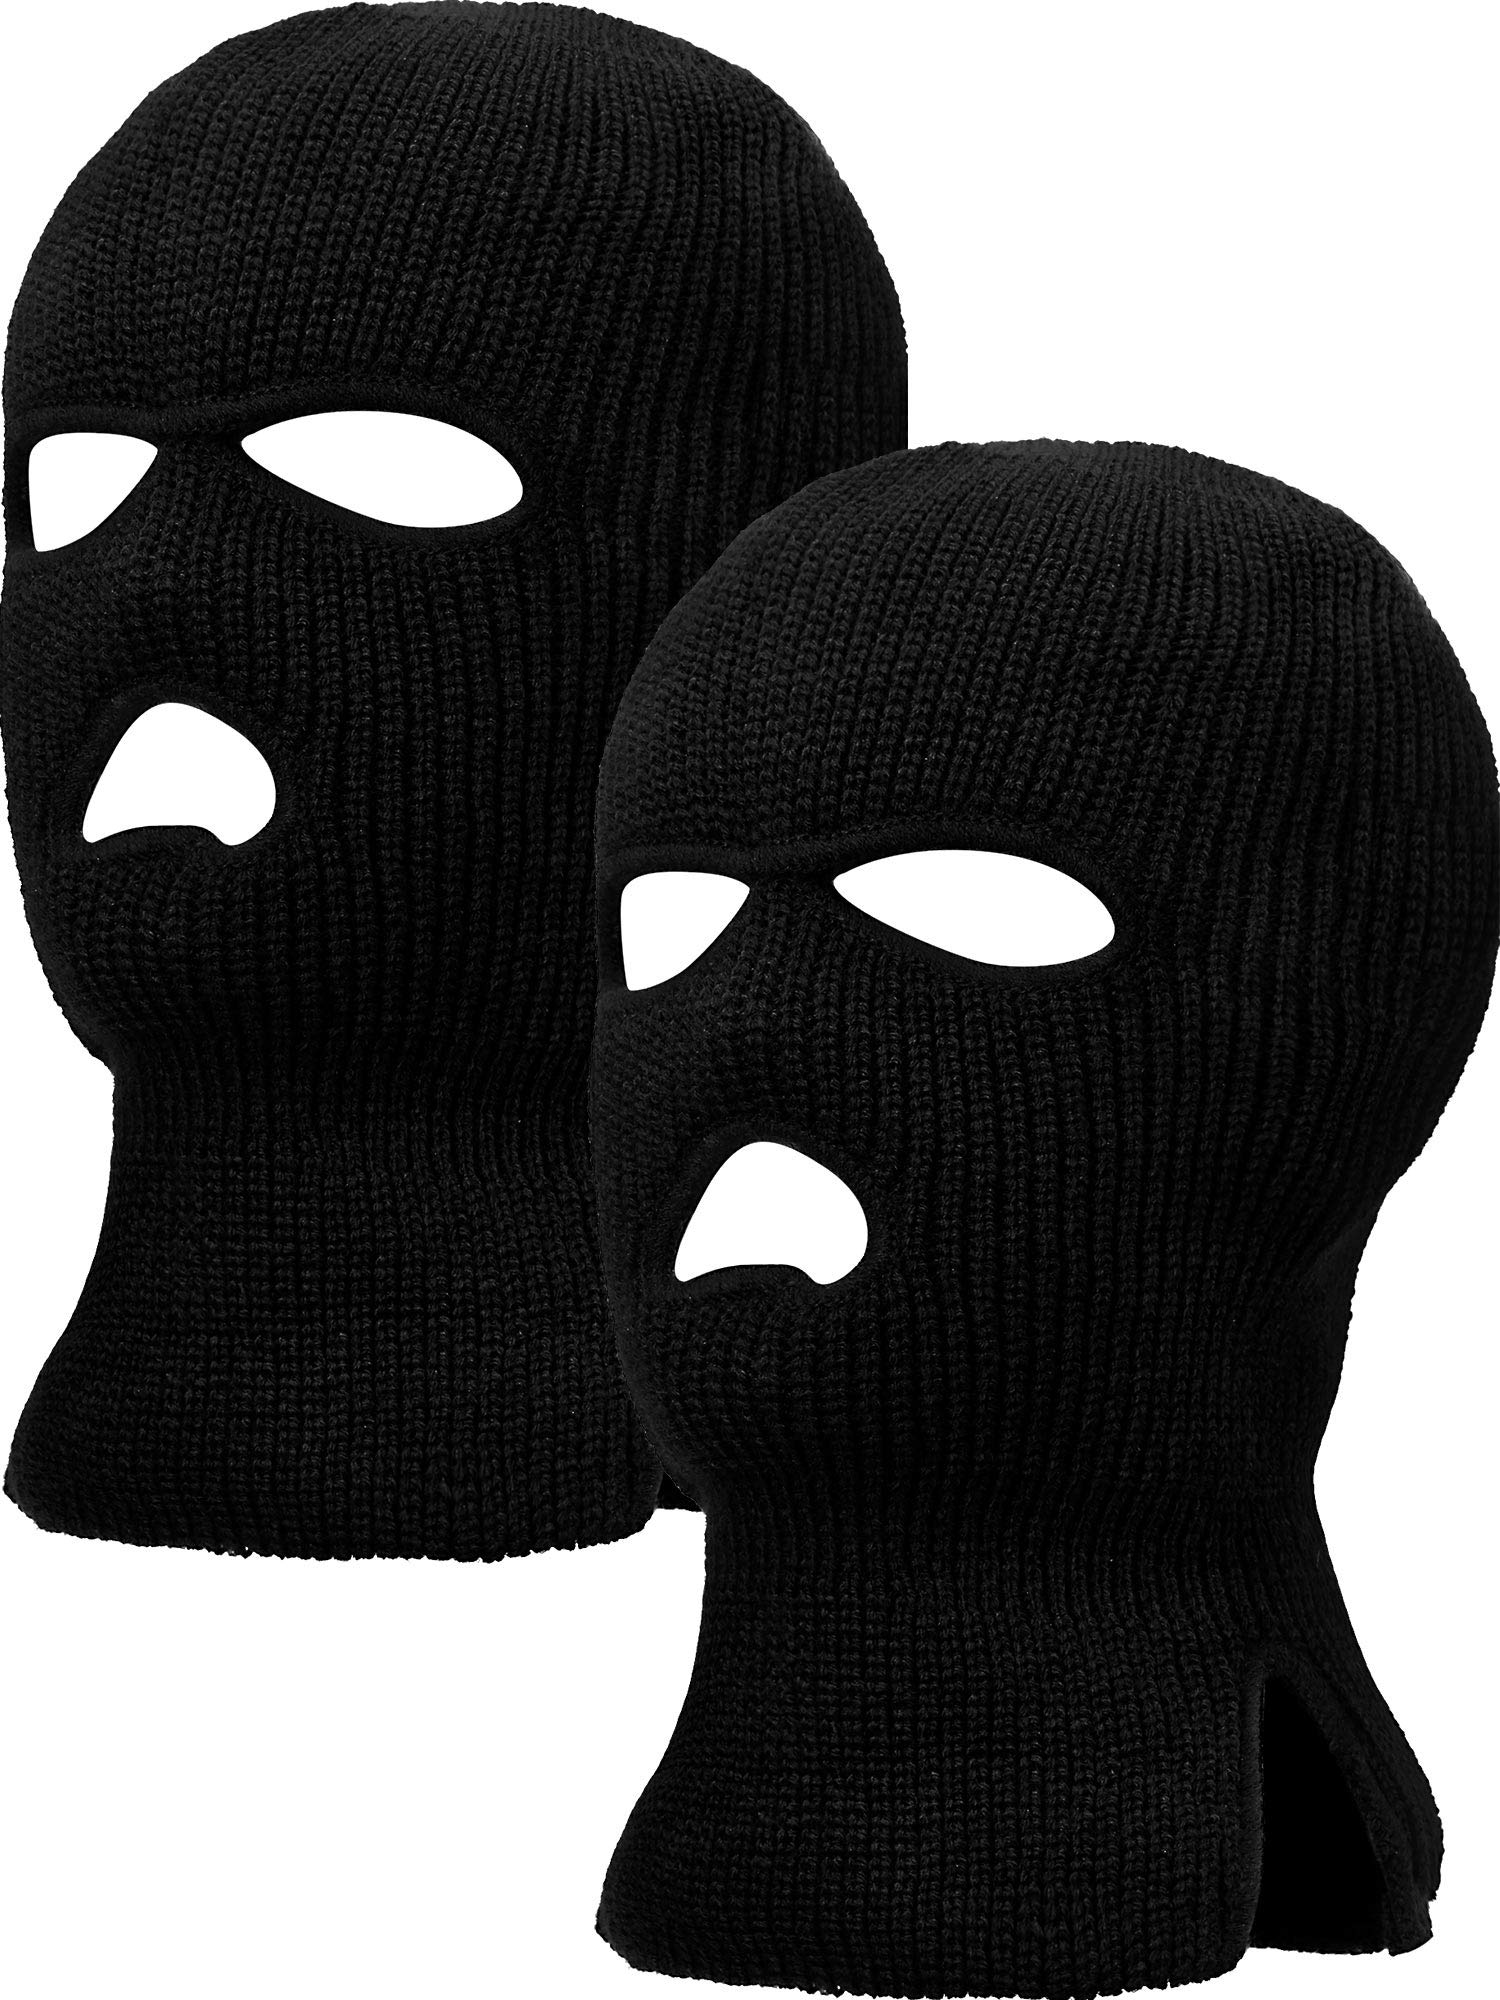 2 Pieces 3-Hole Ski Mask Knitted Face Cover Winter Balaclava Full Face Mask for Winter Outdoor Sports (Black)